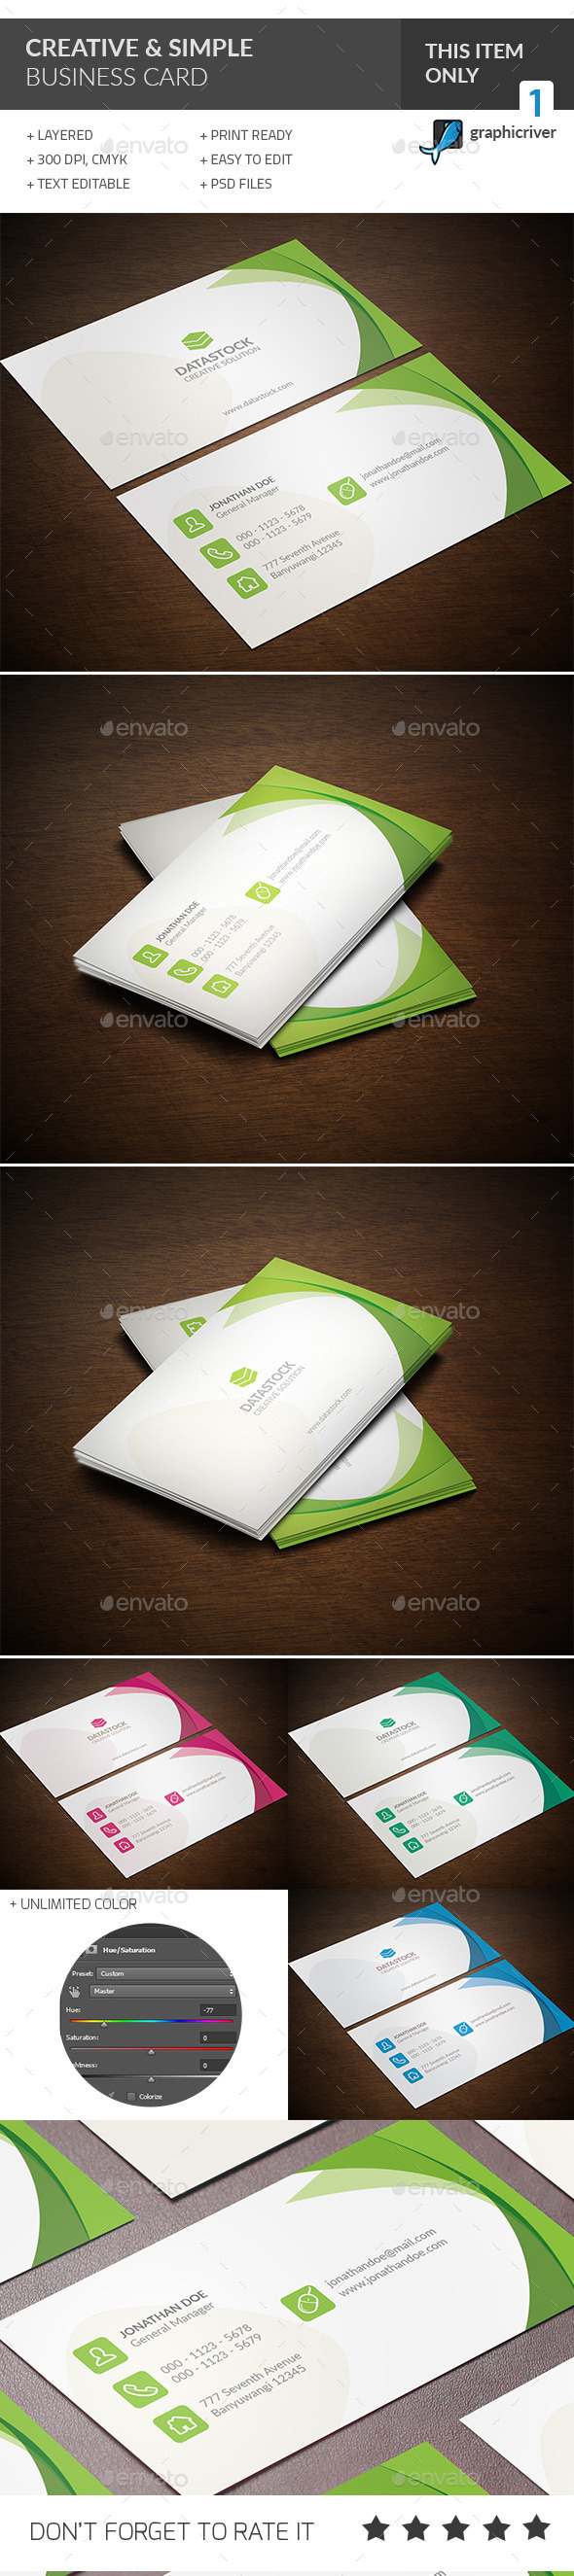 Creative & Simple Business Card - Creative Business Cards